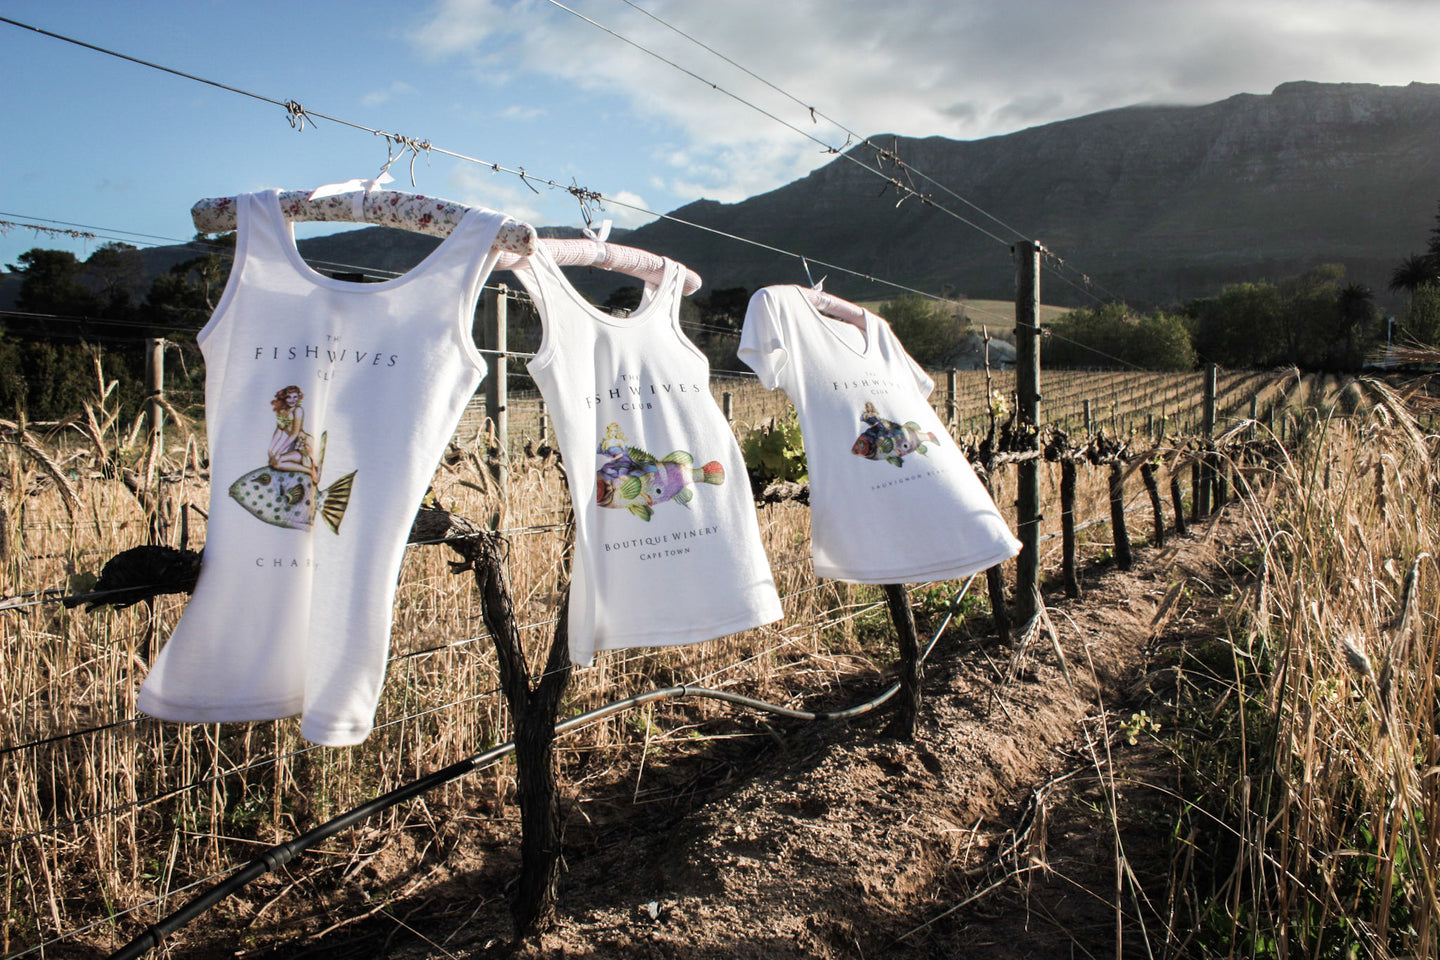 T-shirts hanging in the vineyards